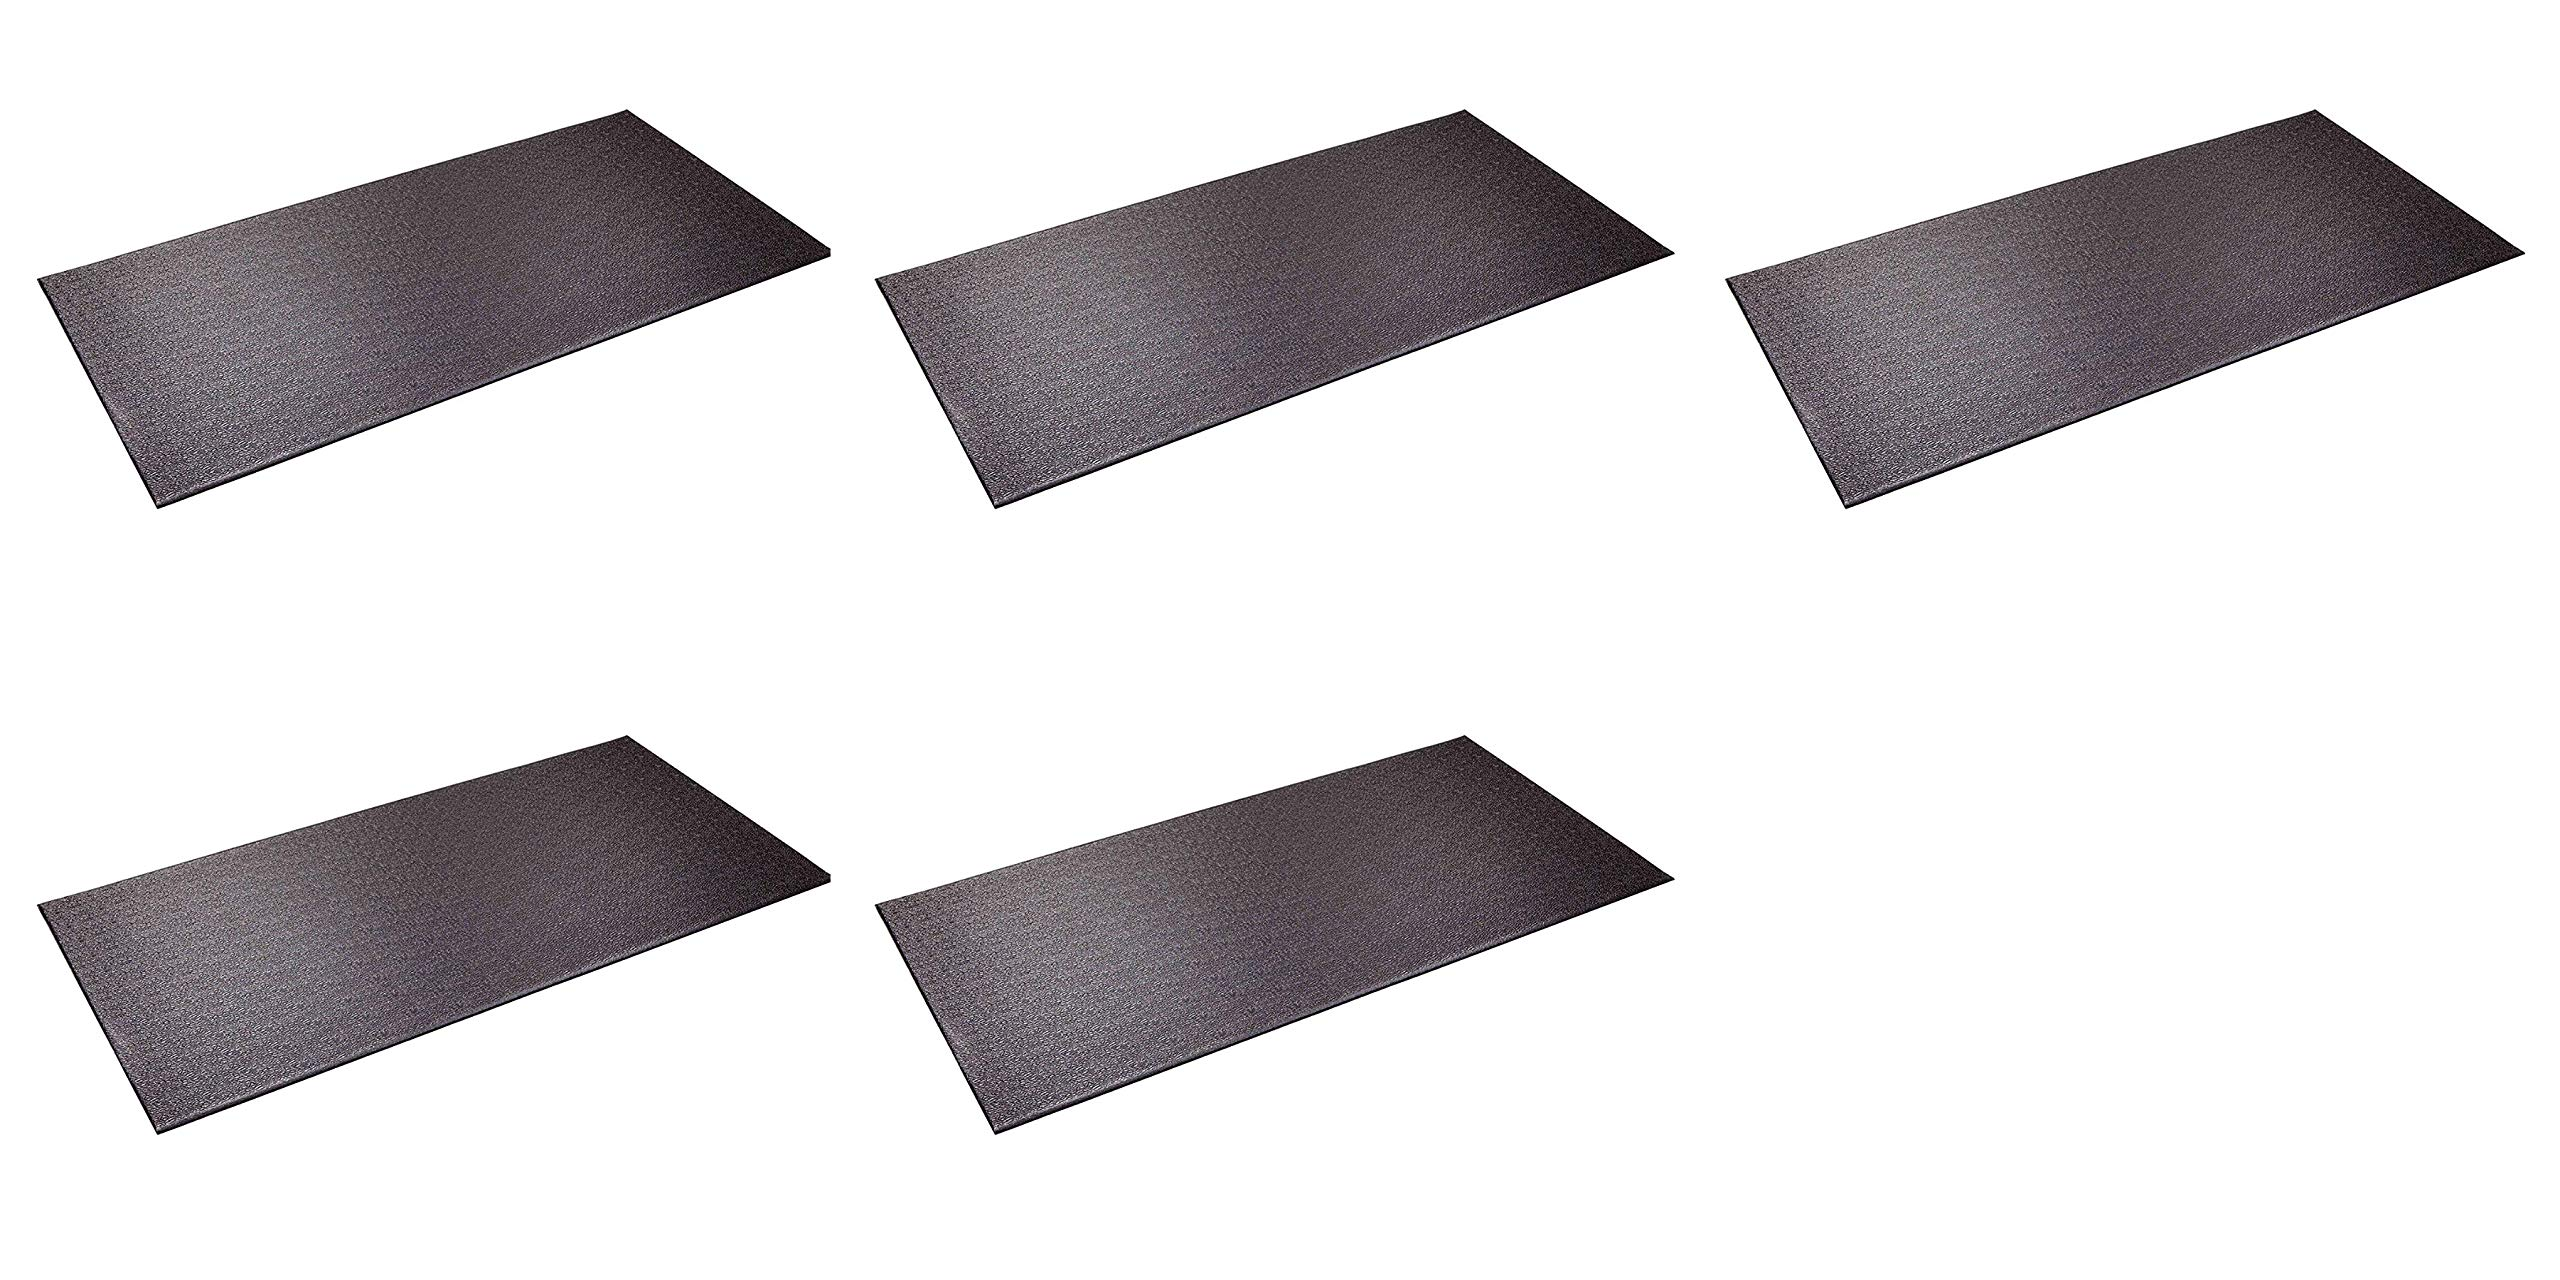 SuperMats Heavy Duty Equipment Mat 13GS Made in U.S.A. for Indoor Cycles Recumbent Bikes Upright Exercise Bikes and Steppers (2.5 Feet x 5 Feet) (30-Inch x 60-Inch) (76.2 cm x 152.4 cm) (Fіvе Расk) by SuperMats (Image #1)